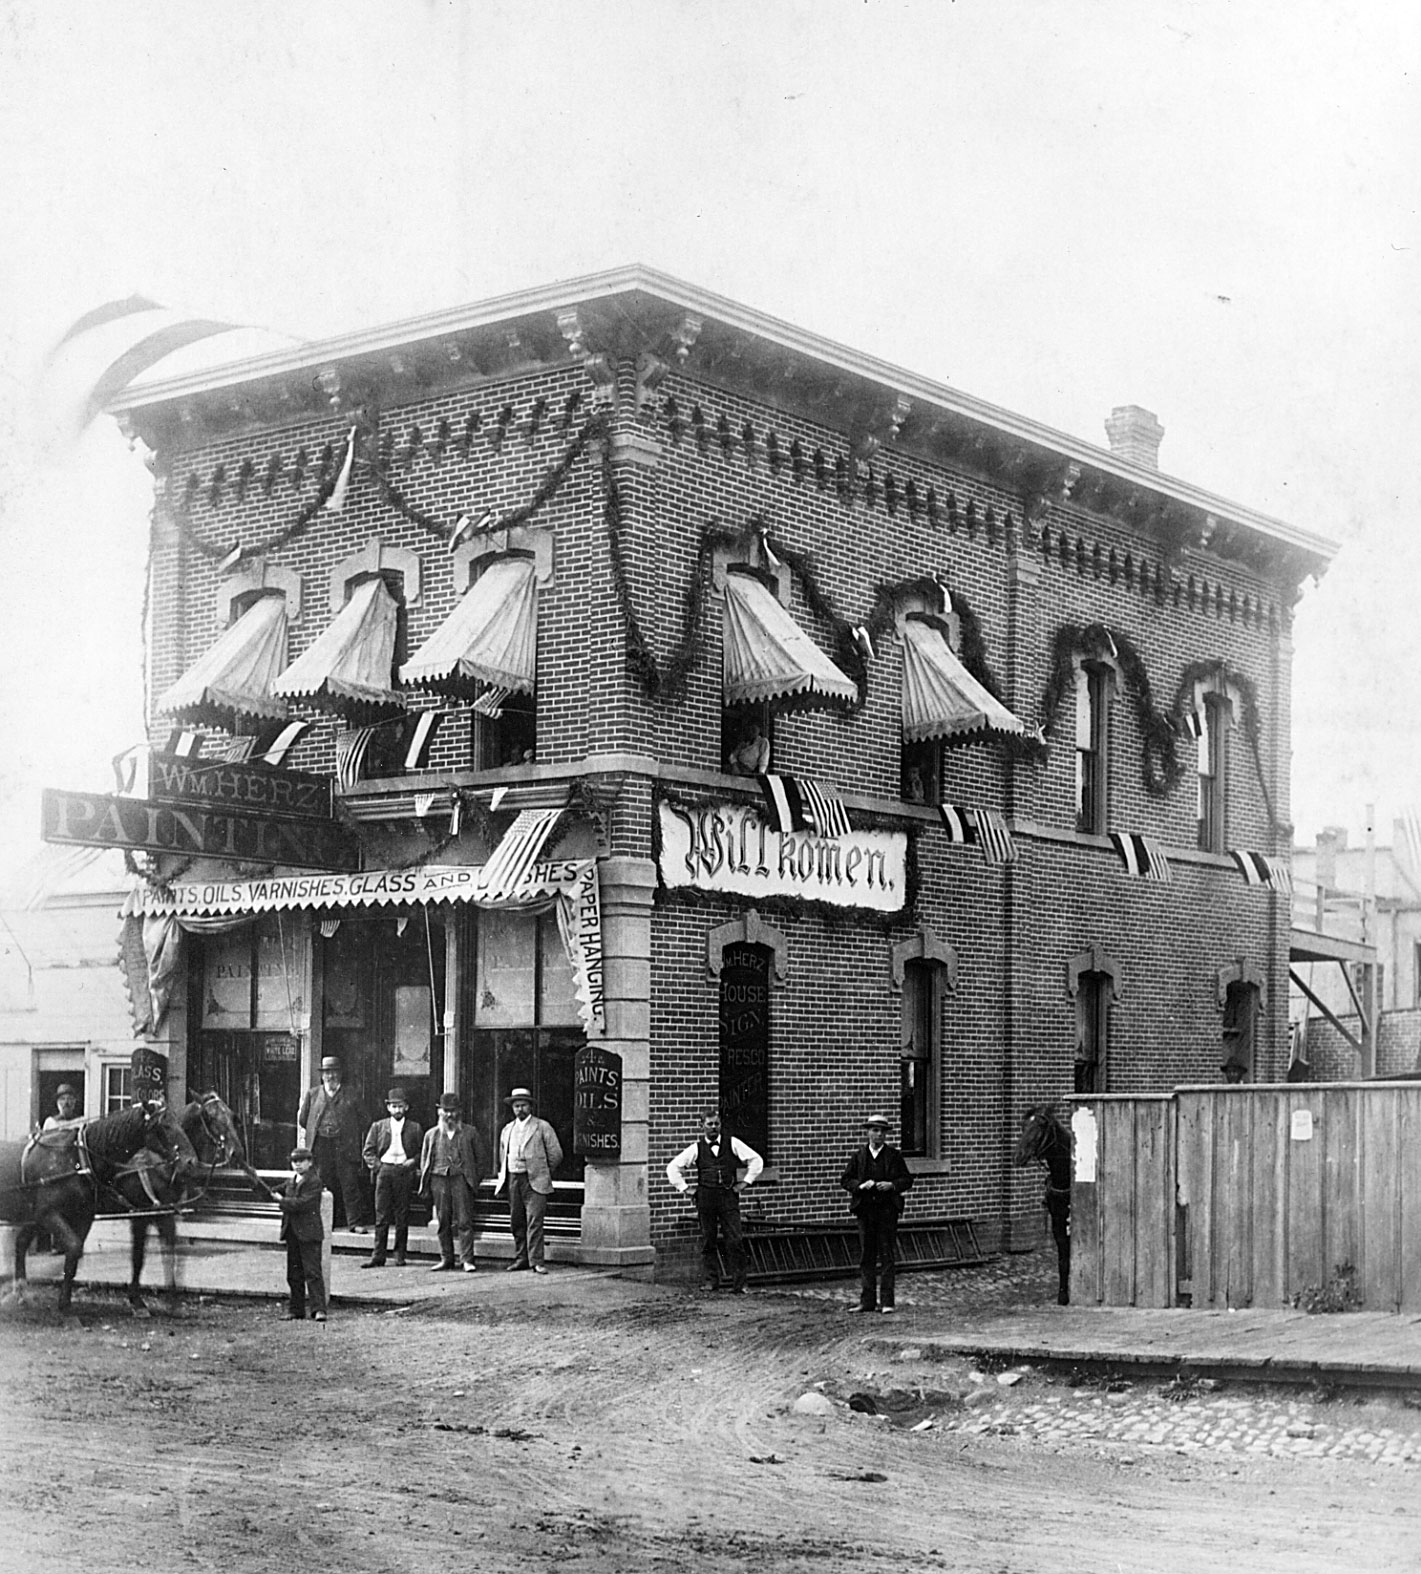 112 West Washington street, 1872 image